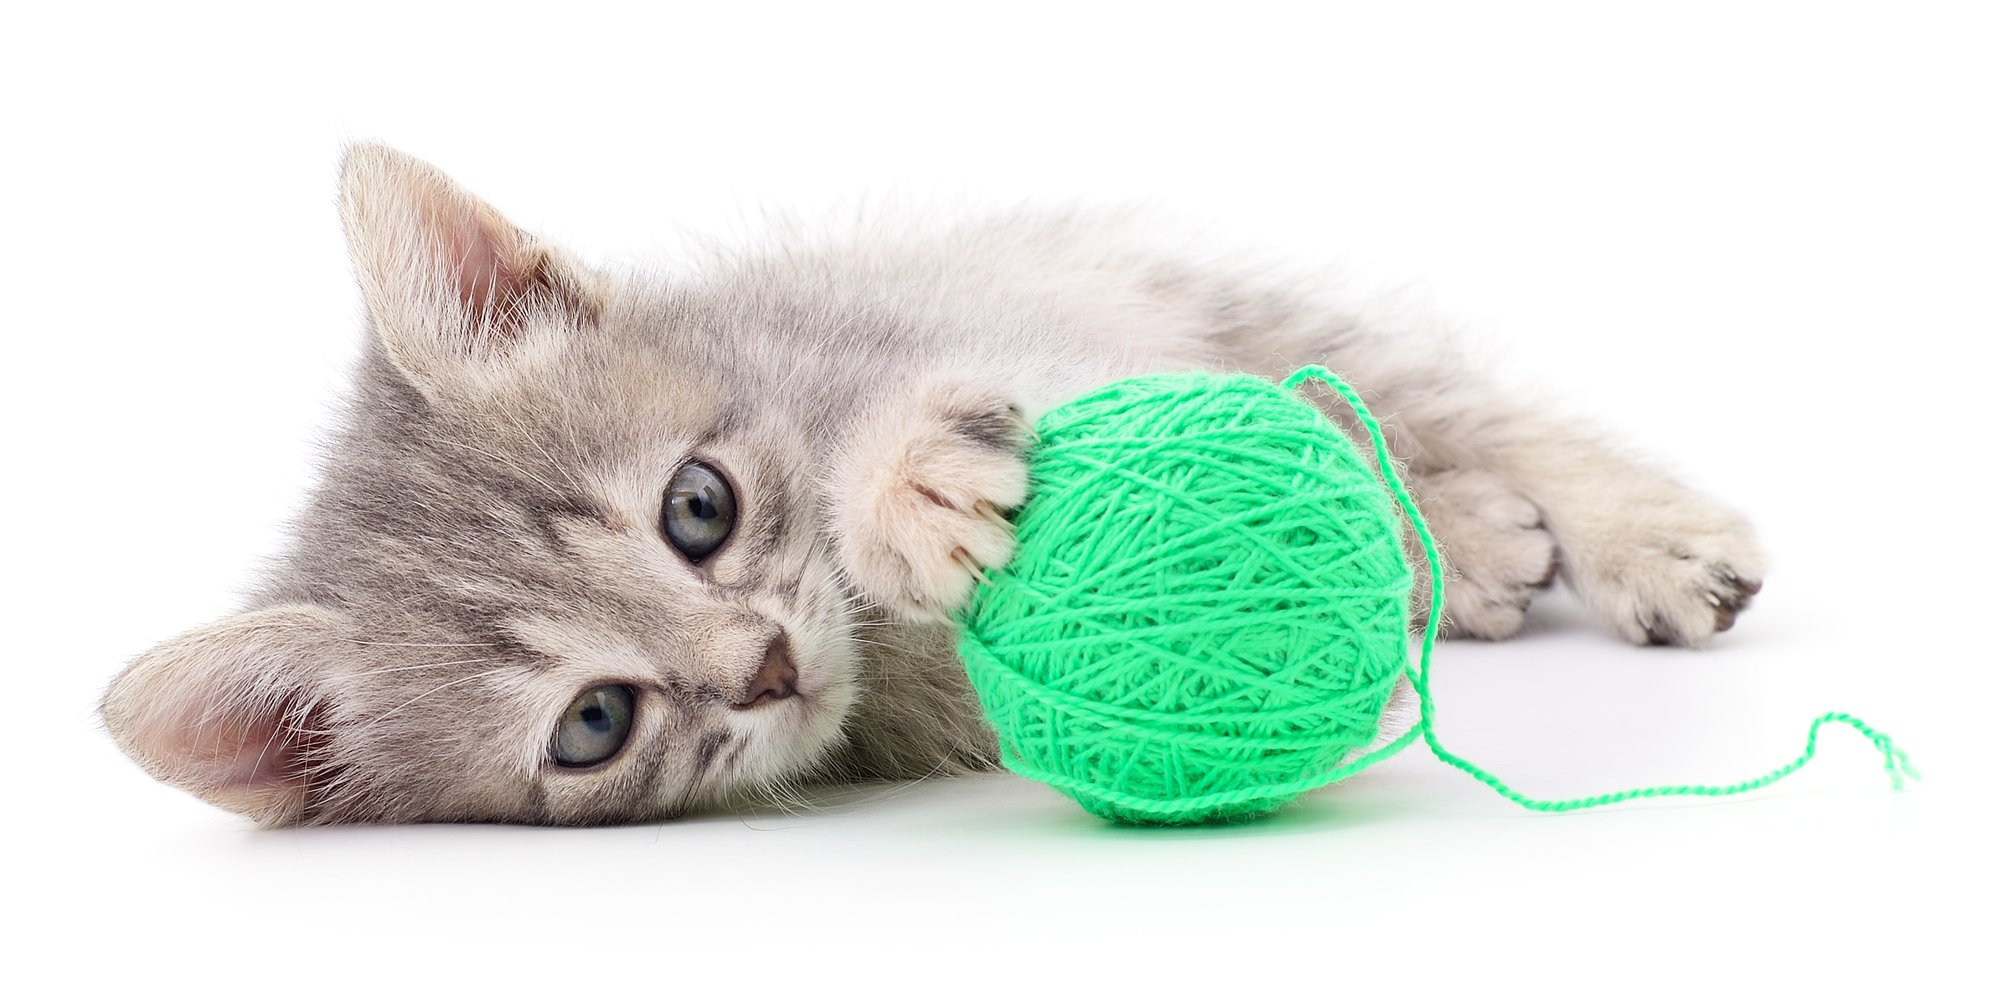 yarn and kitten